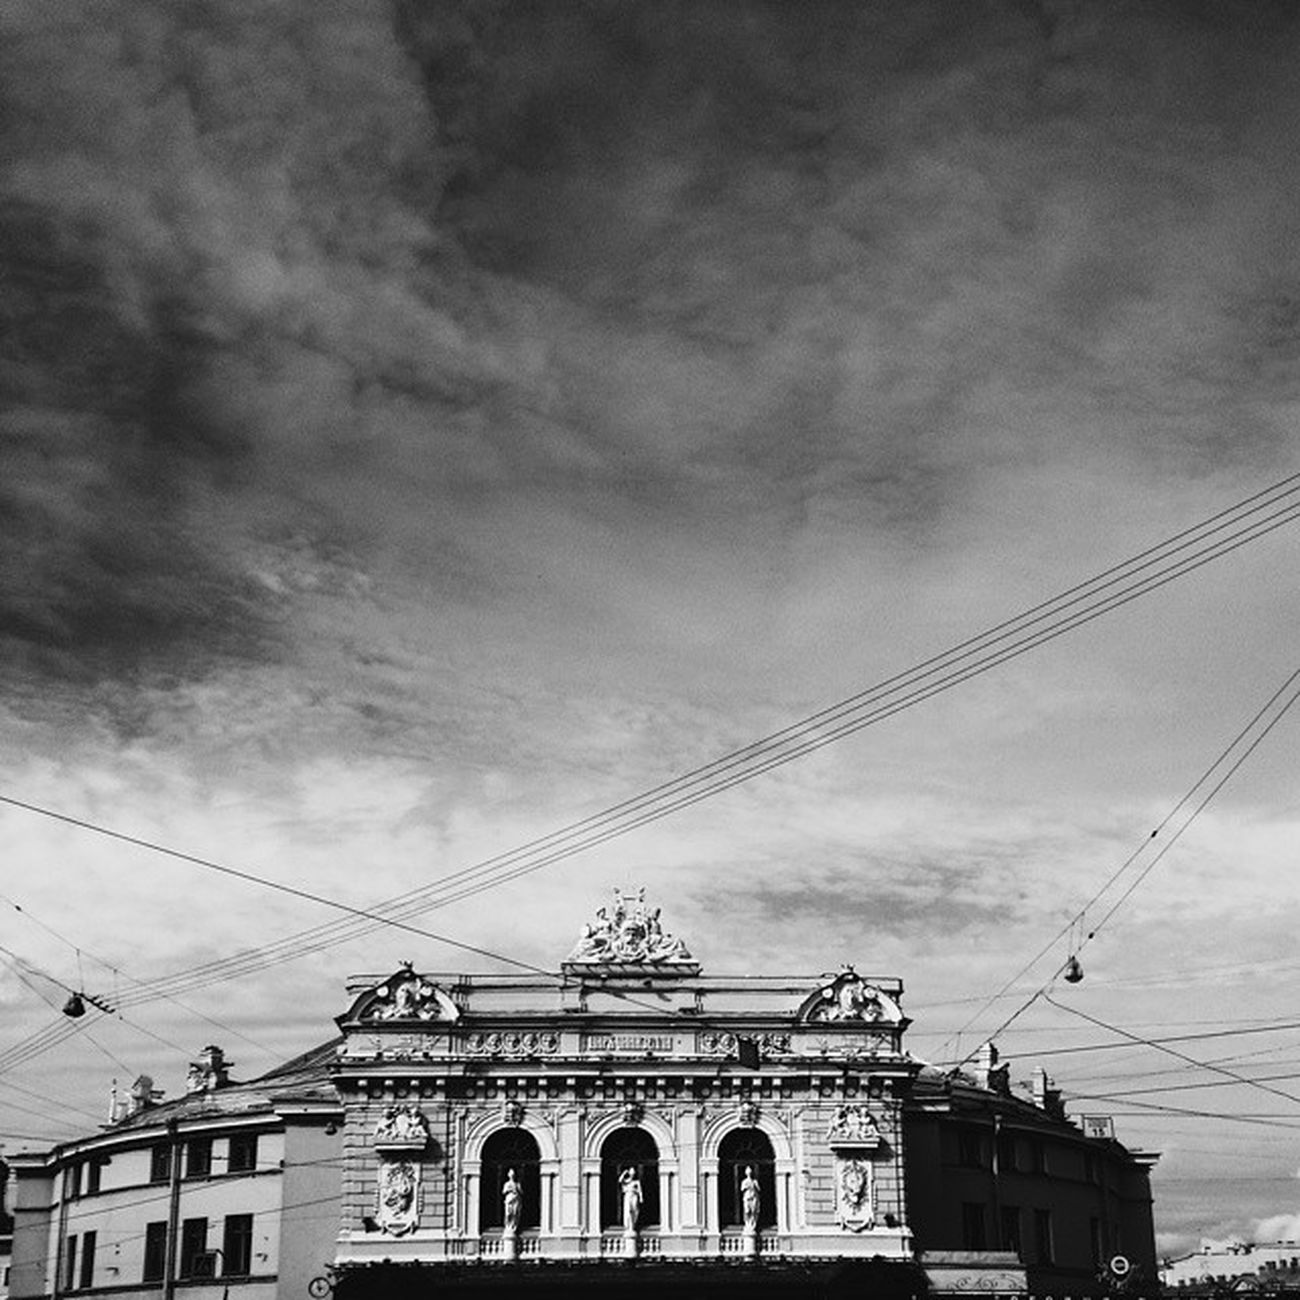 Vscocam VSCO Vsco_good Stpetersburg black_and_white vscogallery vintage vscofriday vscofollow spb